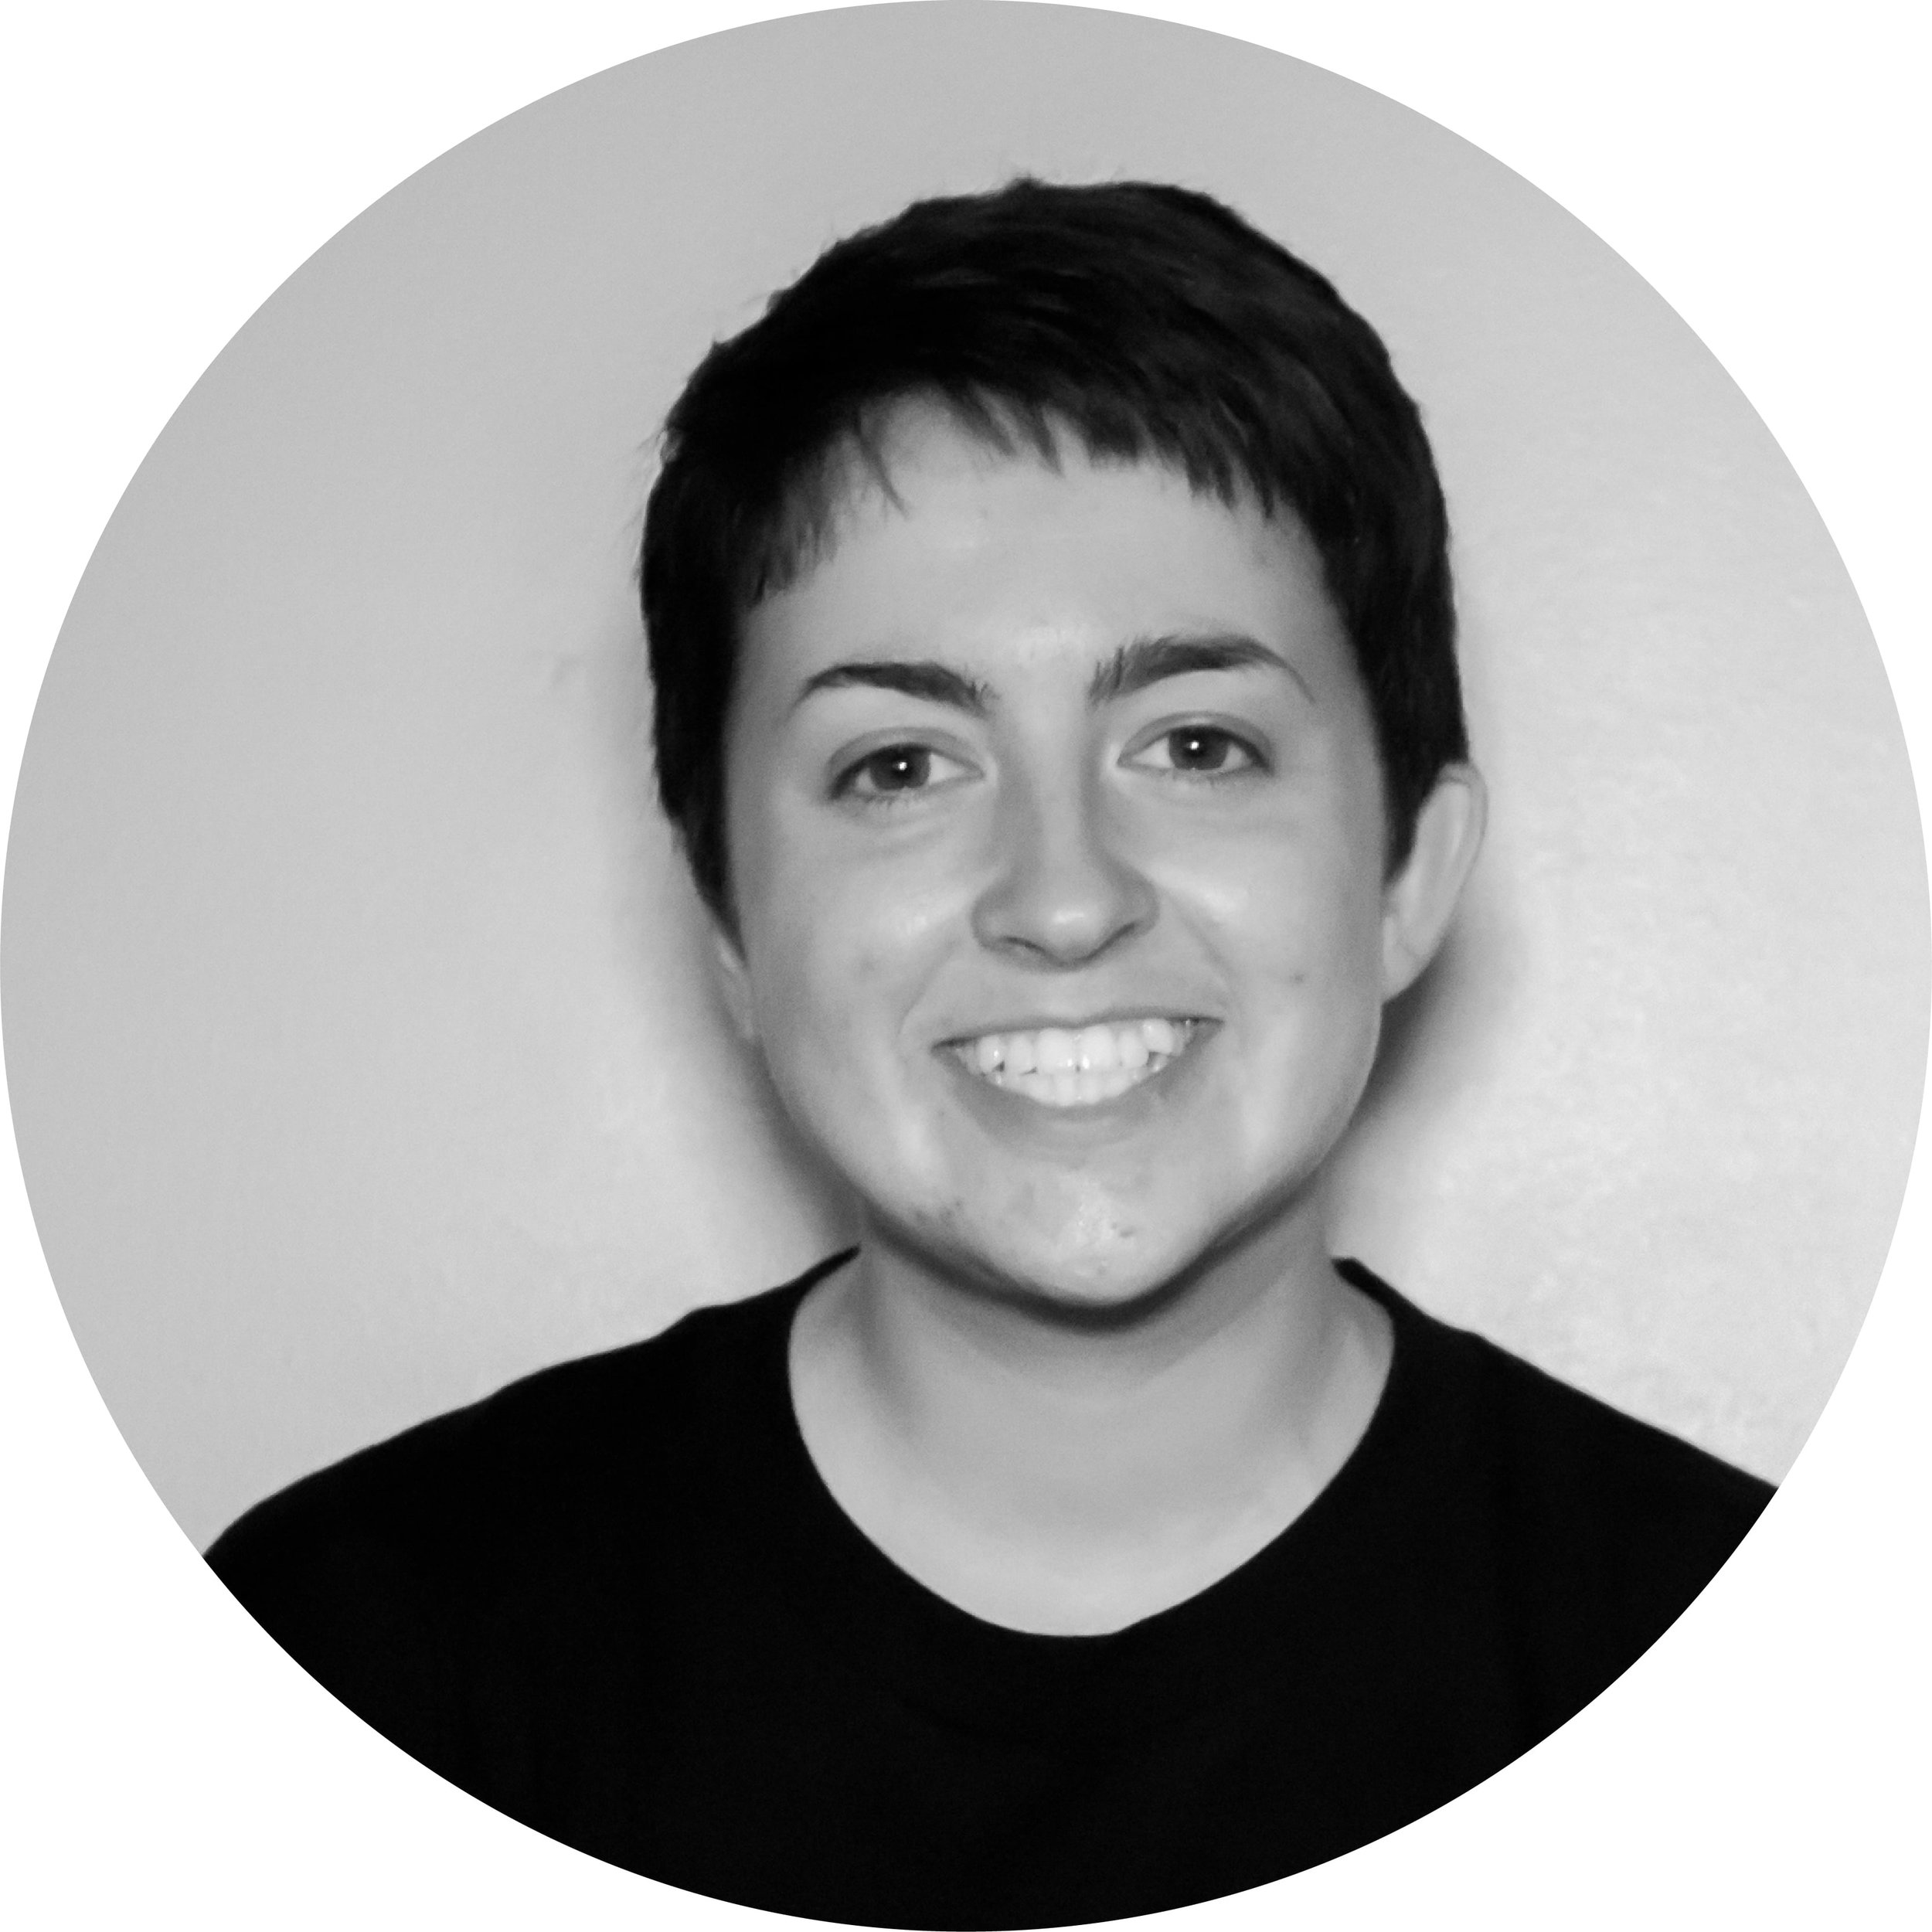 Christina Strachoff - Christina grew up in Southeastern Massachusetts and felt a pull to full time missions while in college at the Rhode Island School of Design.